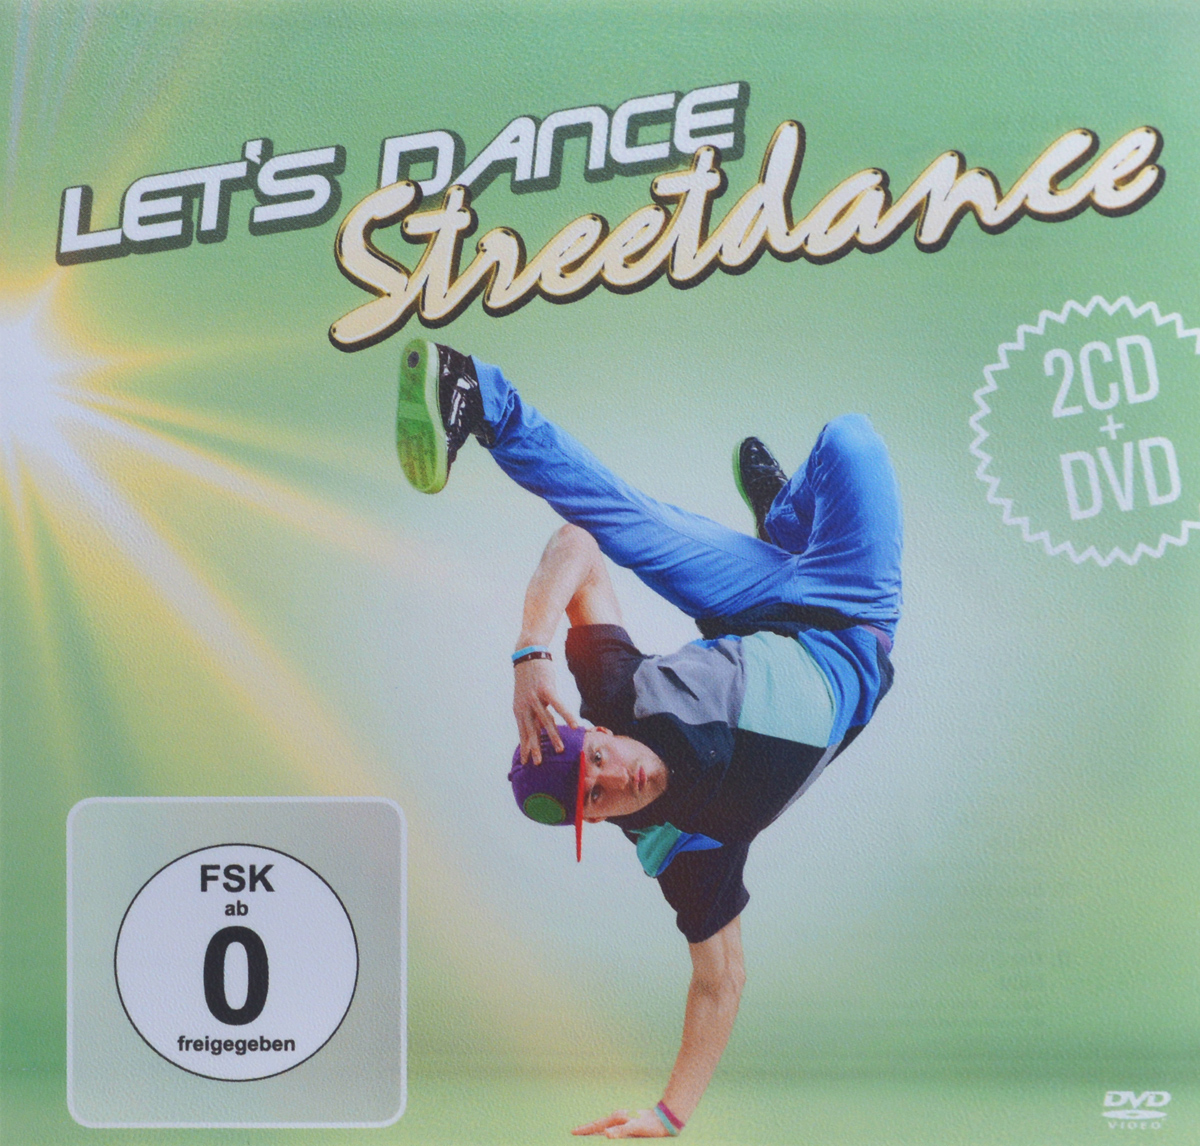 Let's Dance. Streetdance (2 CD + DVD)